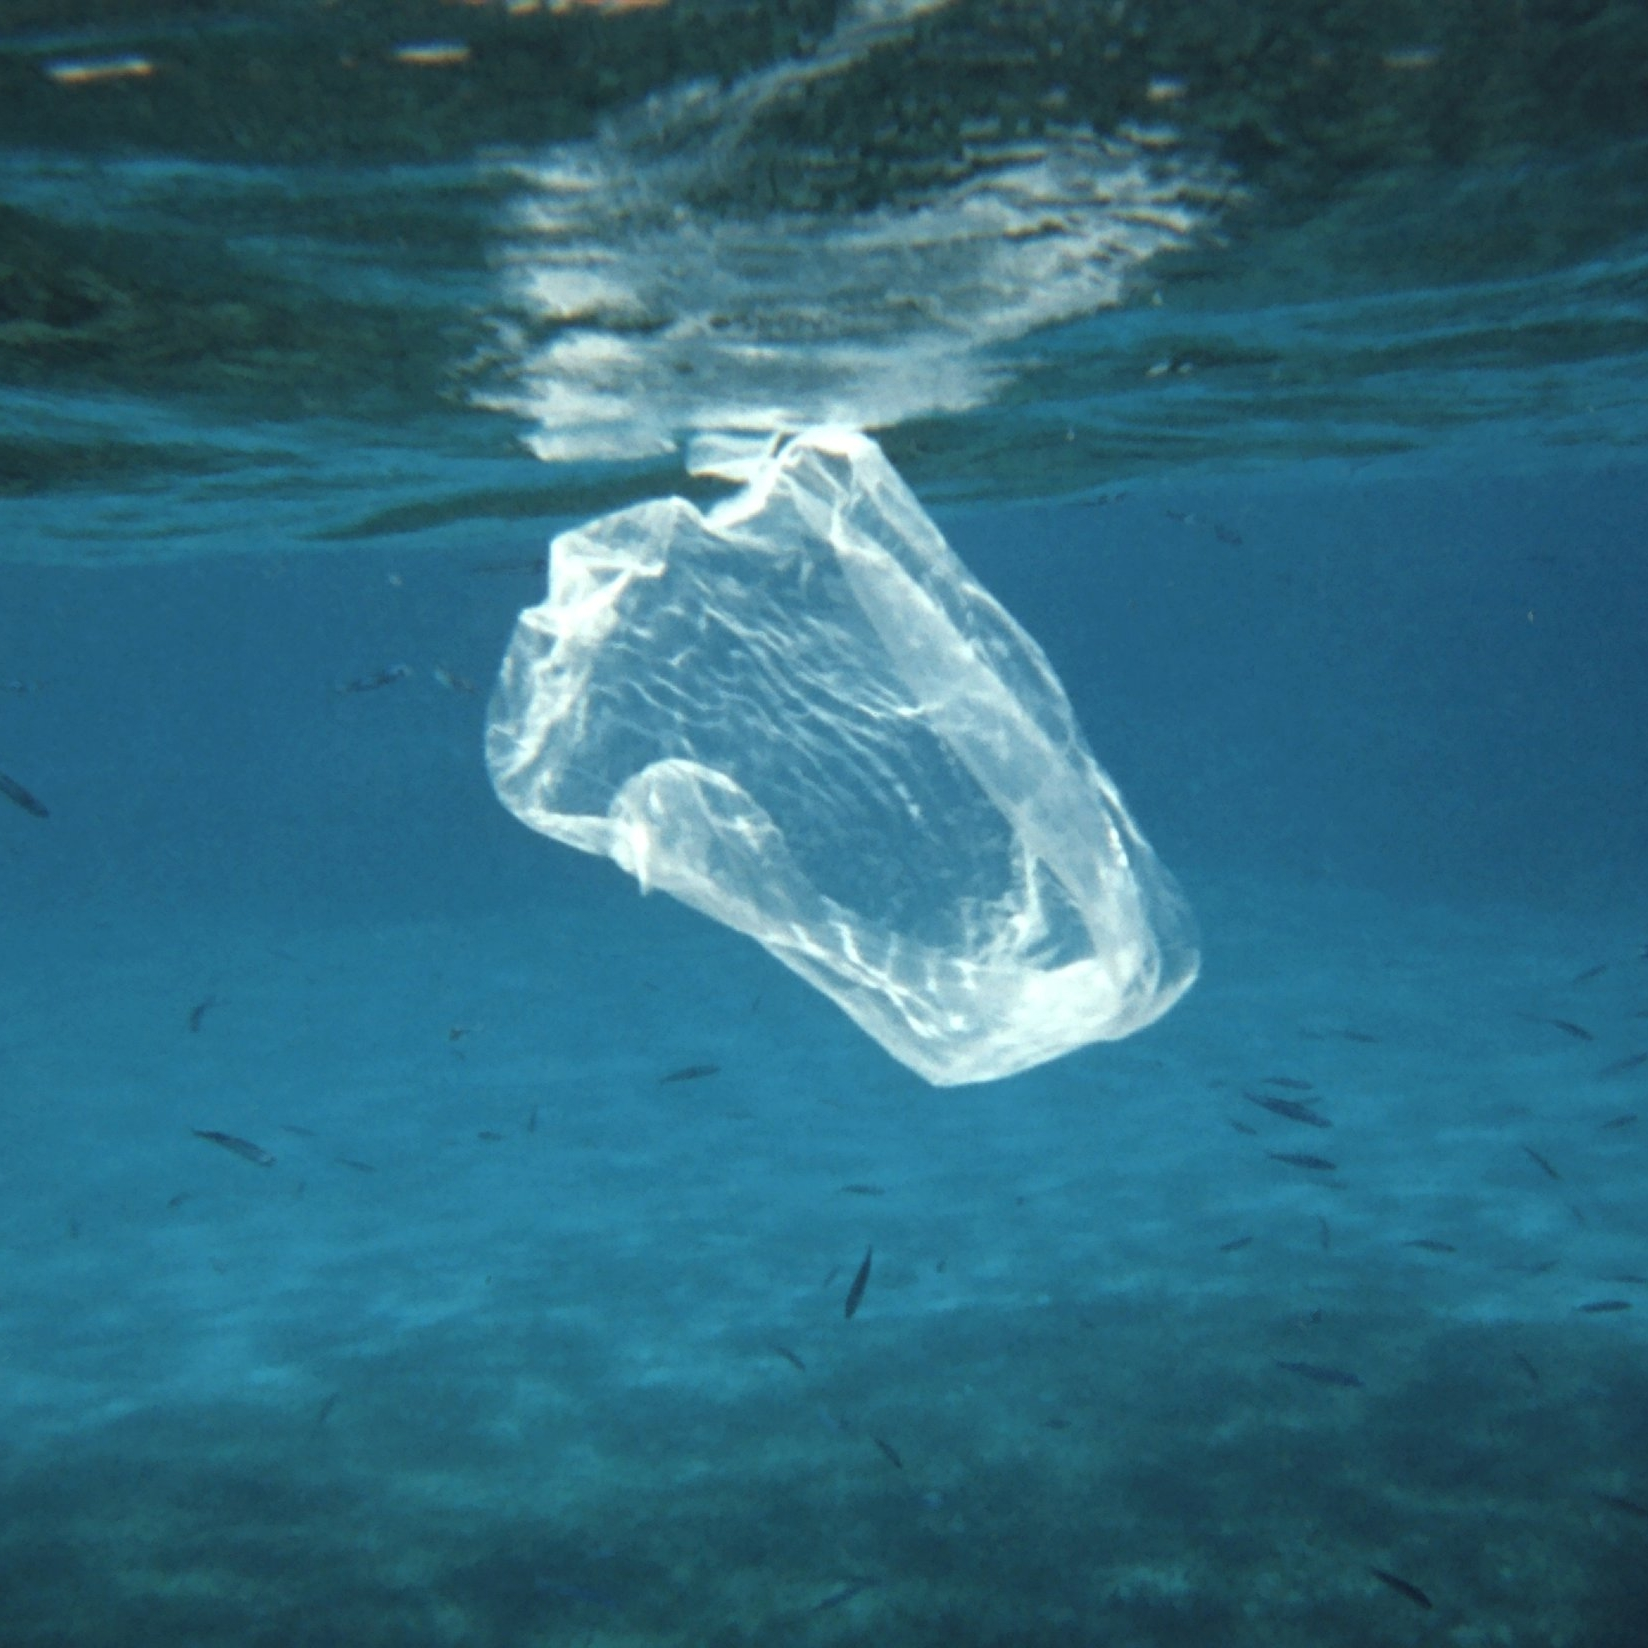 """Myth: All ocean plastic floats - This is a fairly common misconception. The more scientists research plastic, the more they are coming to understand how it behaves in the marine environment. There are many types of plastic—from polystyrene to PVC to nylon. Different plastics have different densities, which allow them to sink, float, or even stay suspended in the water column. Plastic can also become """"biofouled"""" meaning bacteria and other organisms attach to the surface of it, making it heavier, and causing it to sink. Researchers now recognize the seafloor as a sink (area of accumulation) for microplastics."""